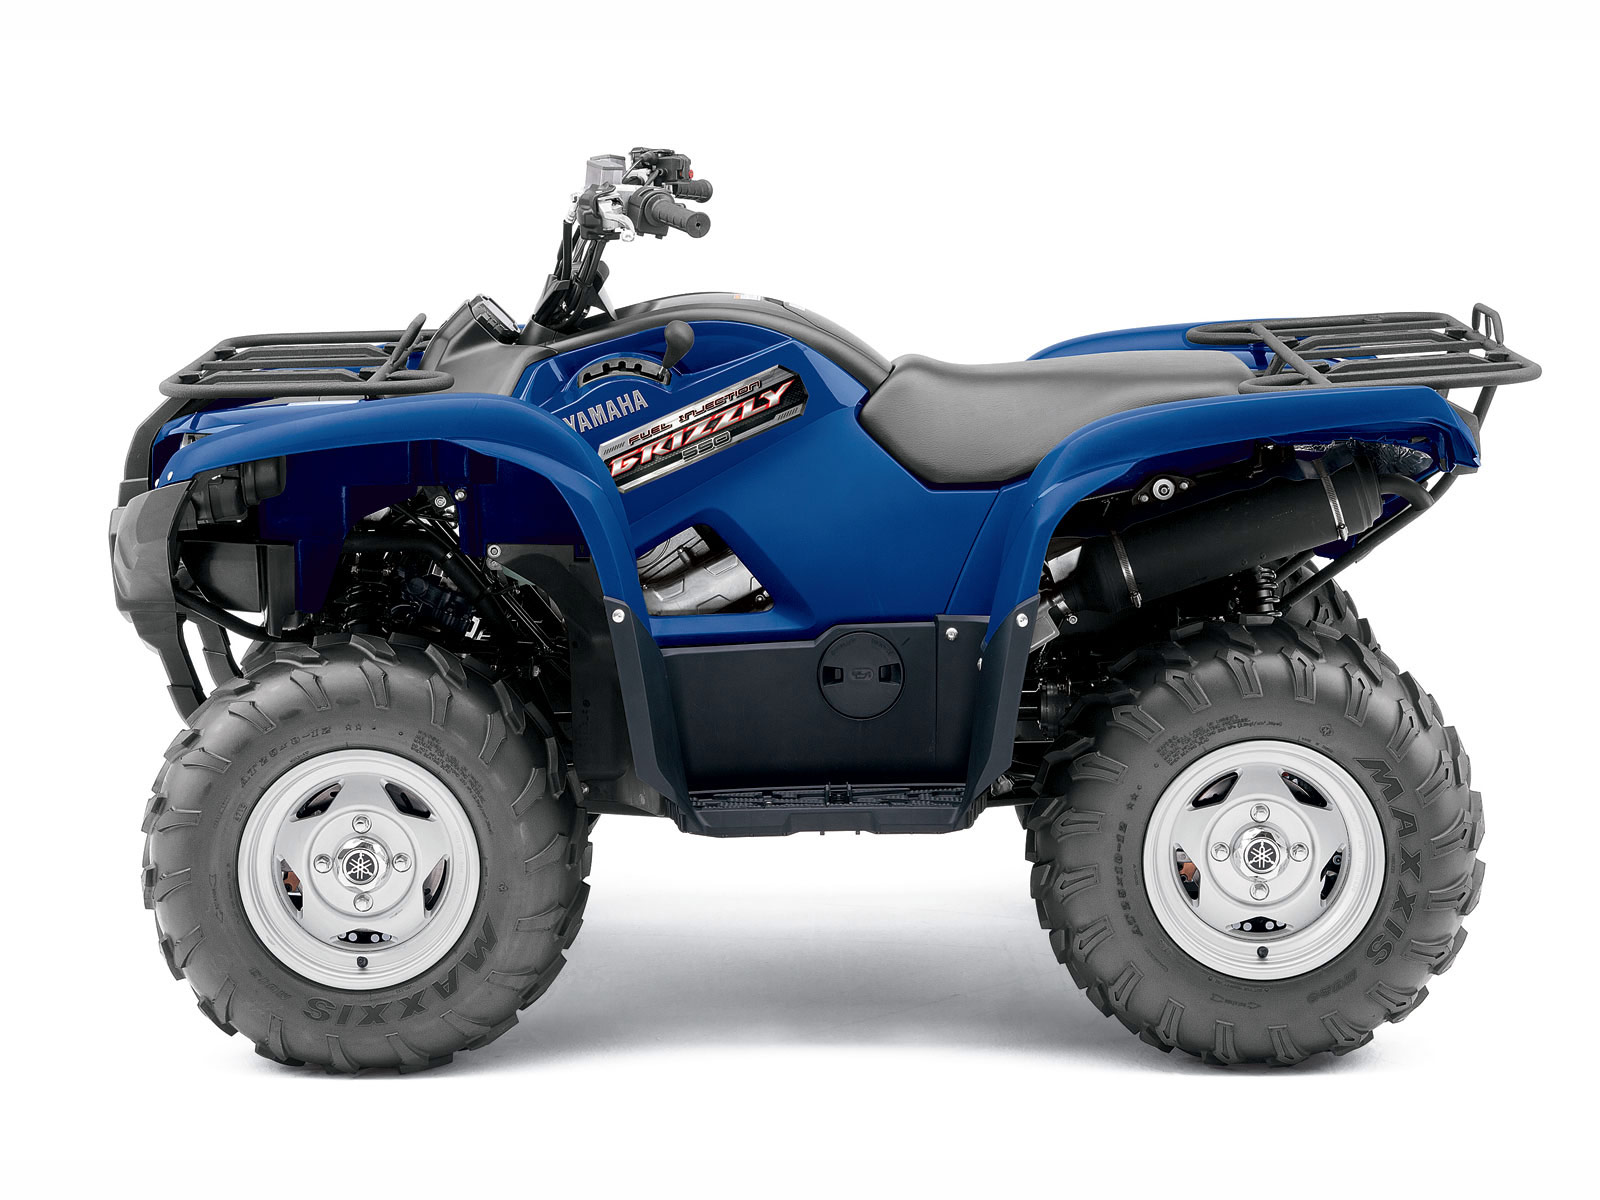 2012 Yamaha Grizzly 550 Wiring Diagram Will Be A 2004 Fi Auto 4x4 Atv Pictures Rh Blogspot Com 660 600